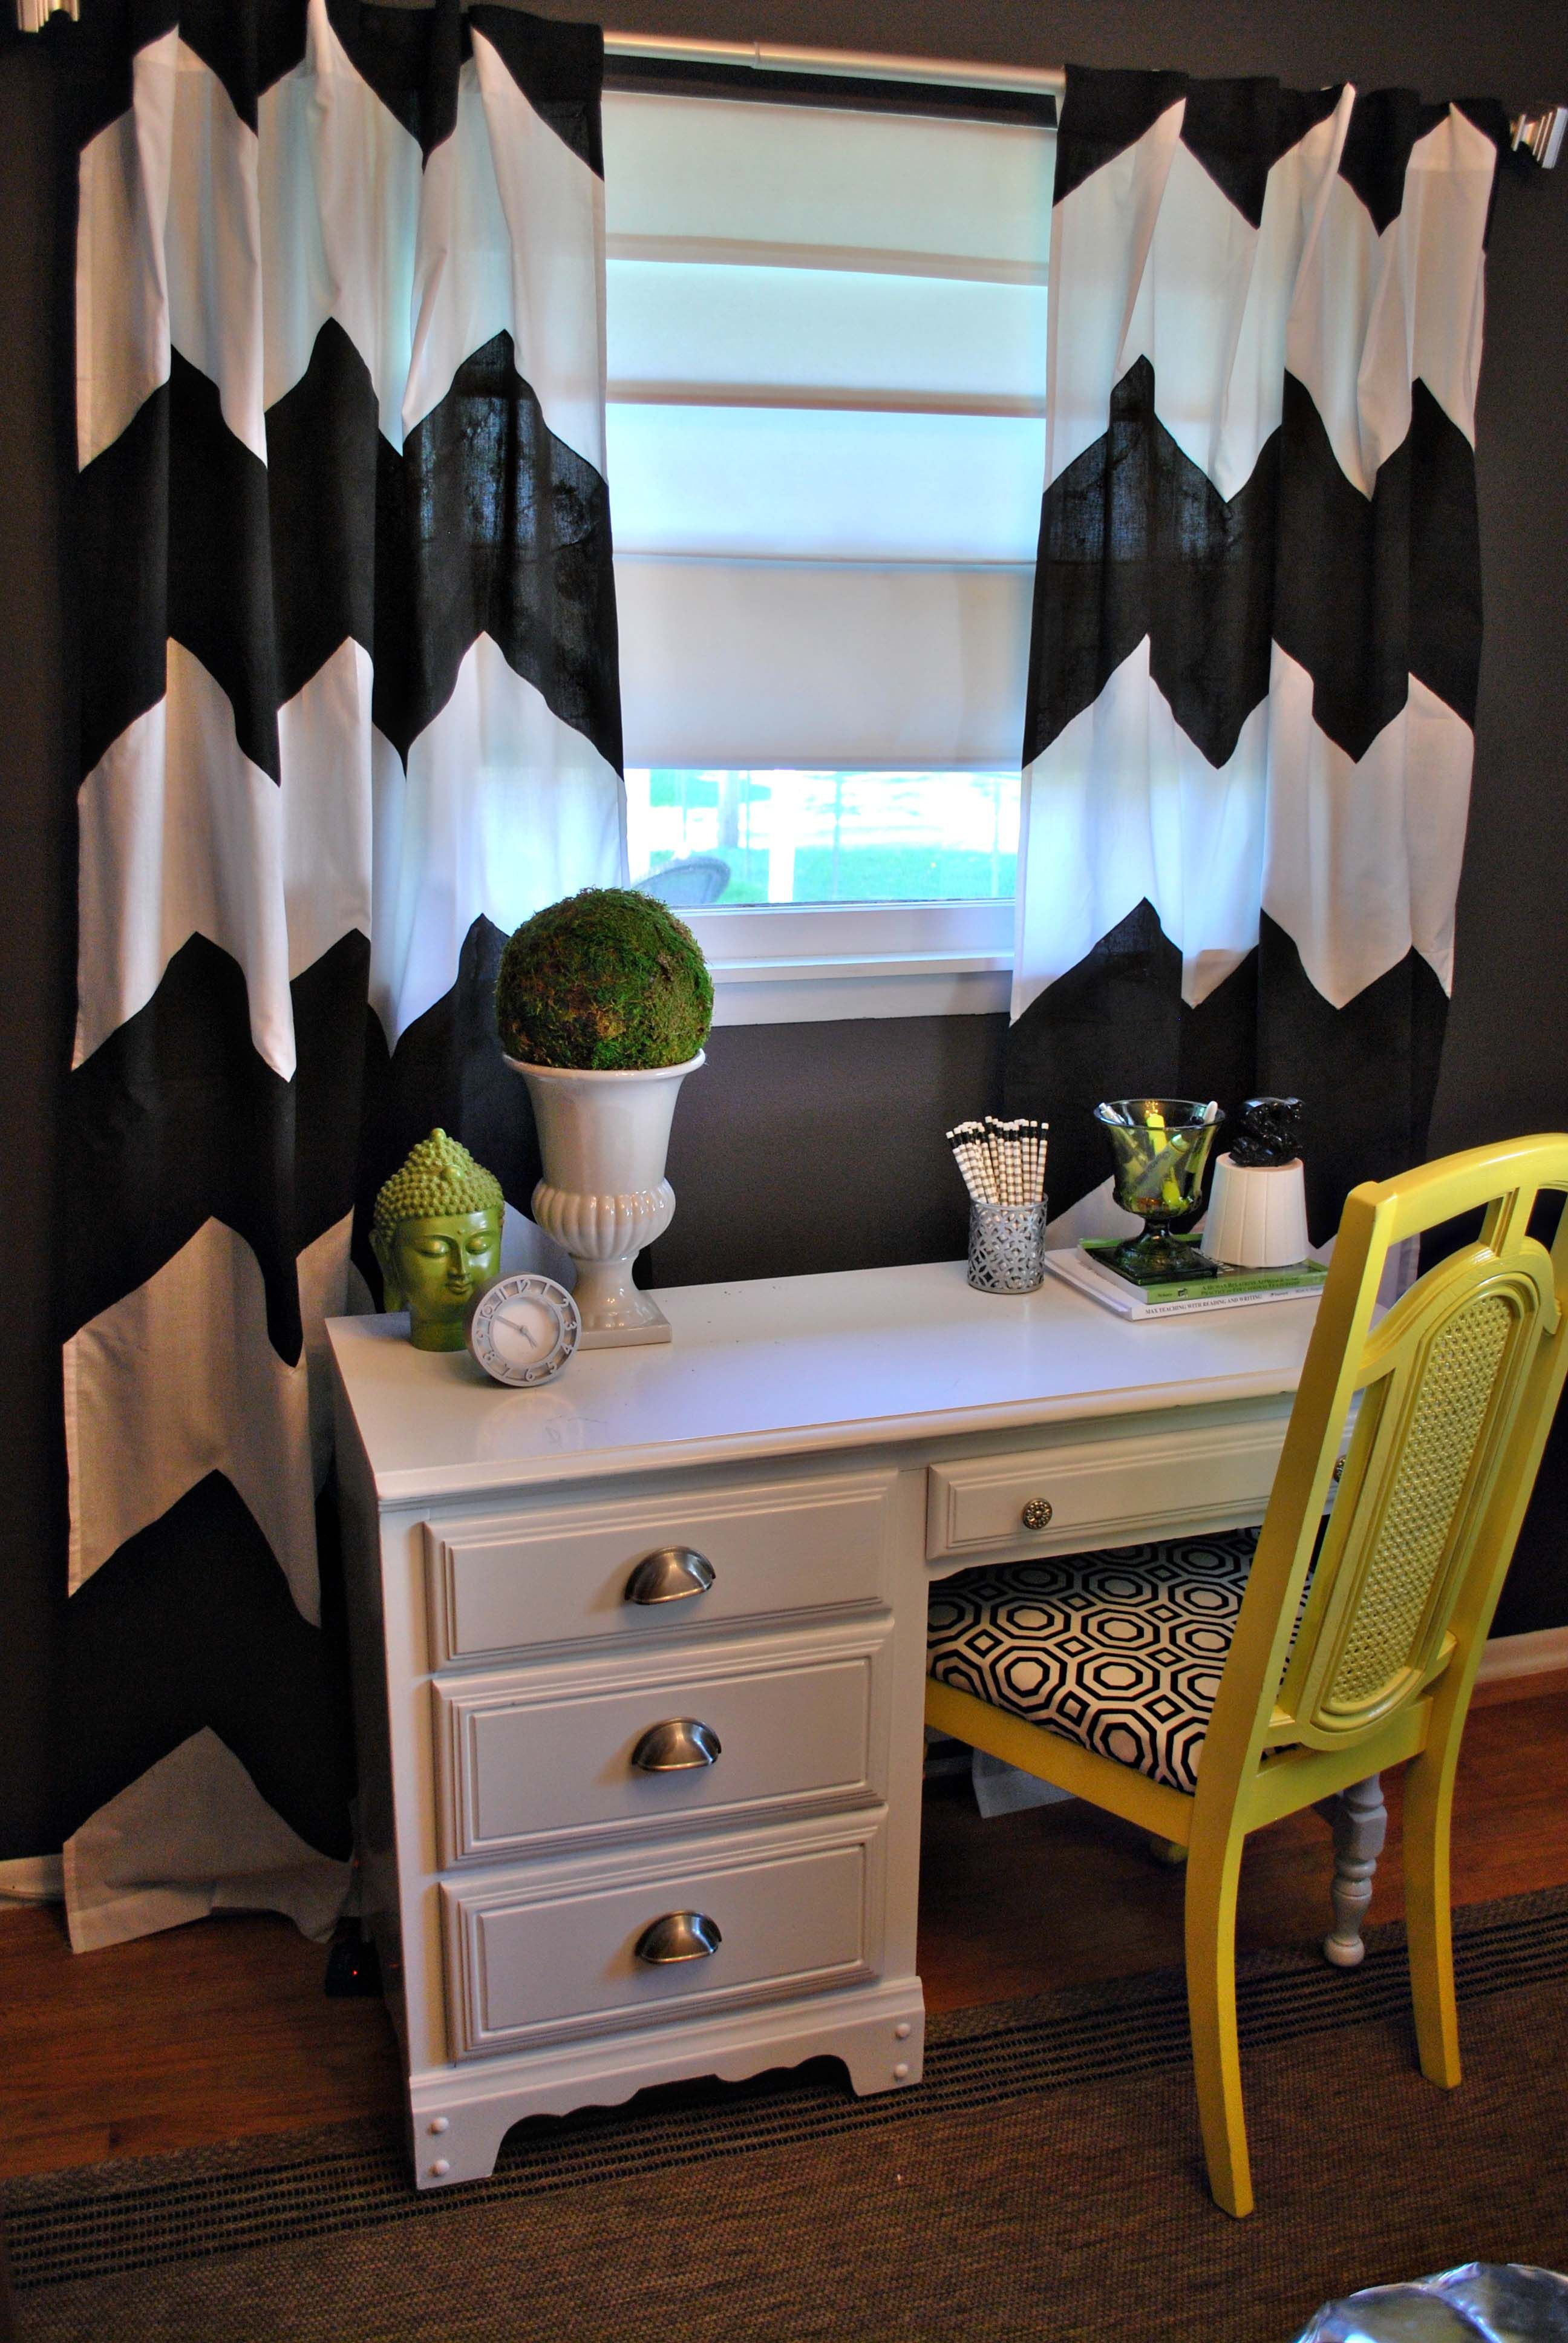 Clean Look With Simple Lines And Pops Of Color... Love! Office Curtains Chevron ...